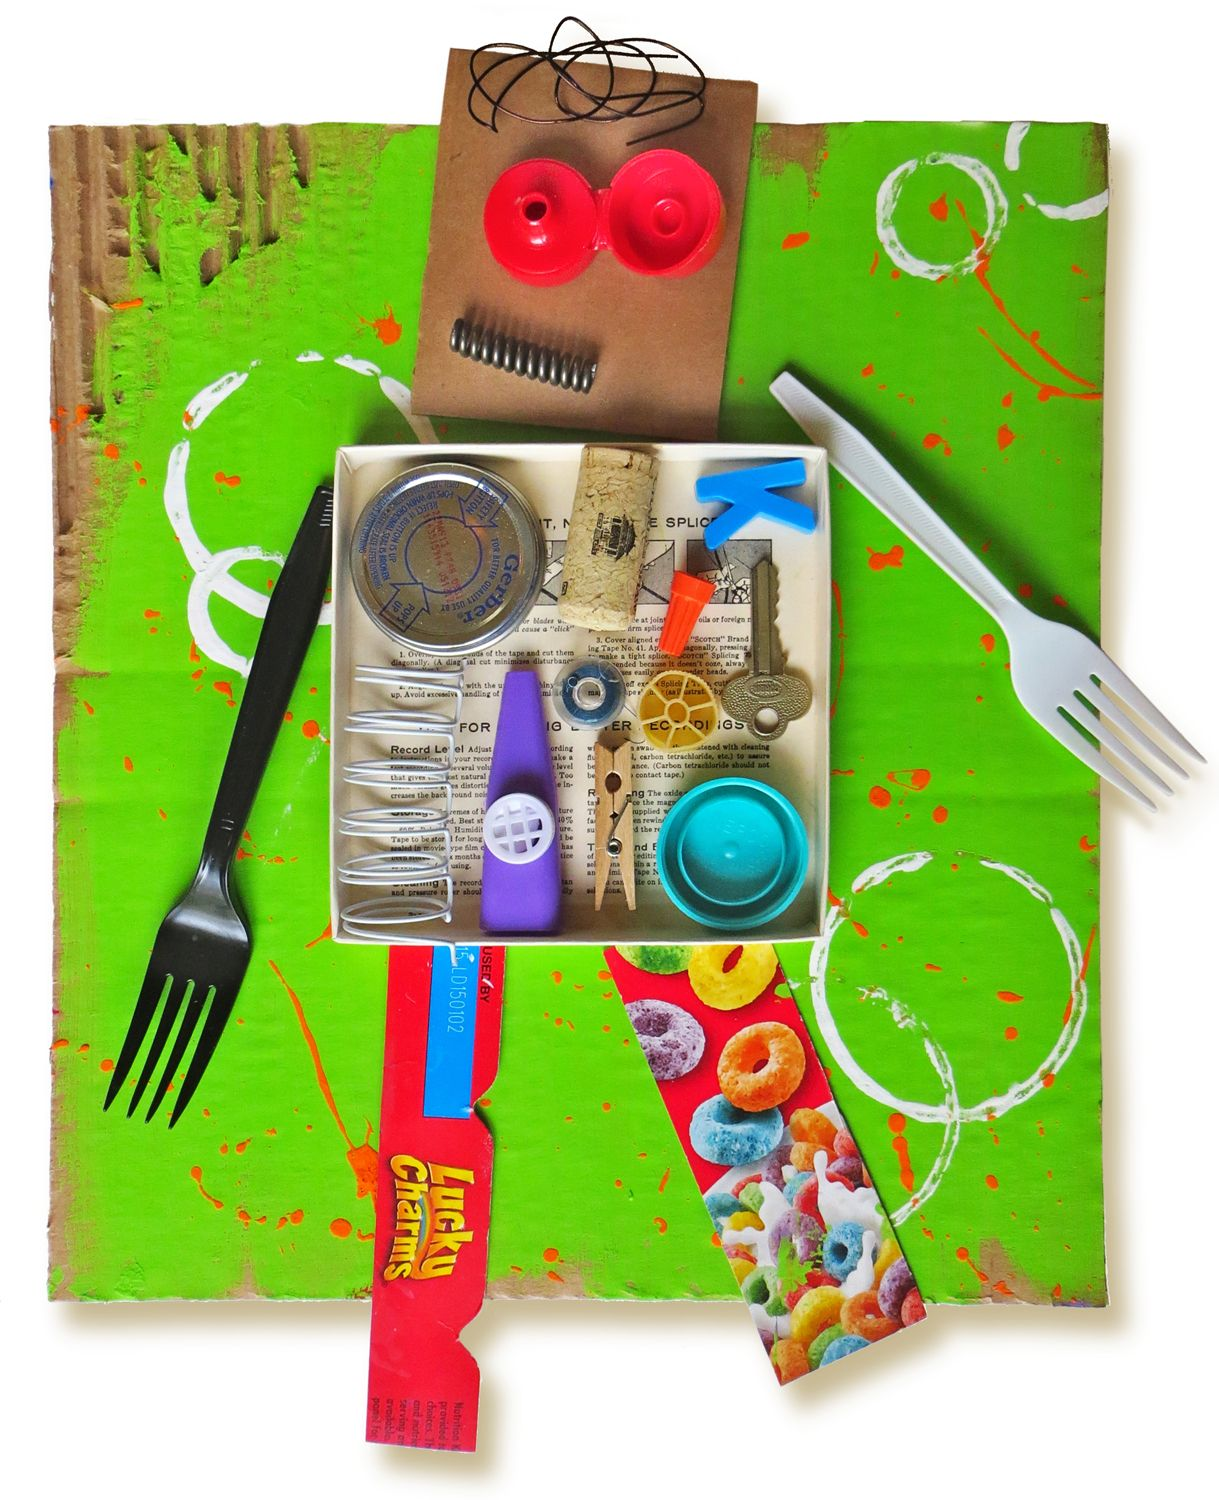 Happy Earth Day! Check out our Recycled Robots Craft of the Month: http://www.fabercastell.com/creativity-for-kids/creativity-club/craft-of-the-month